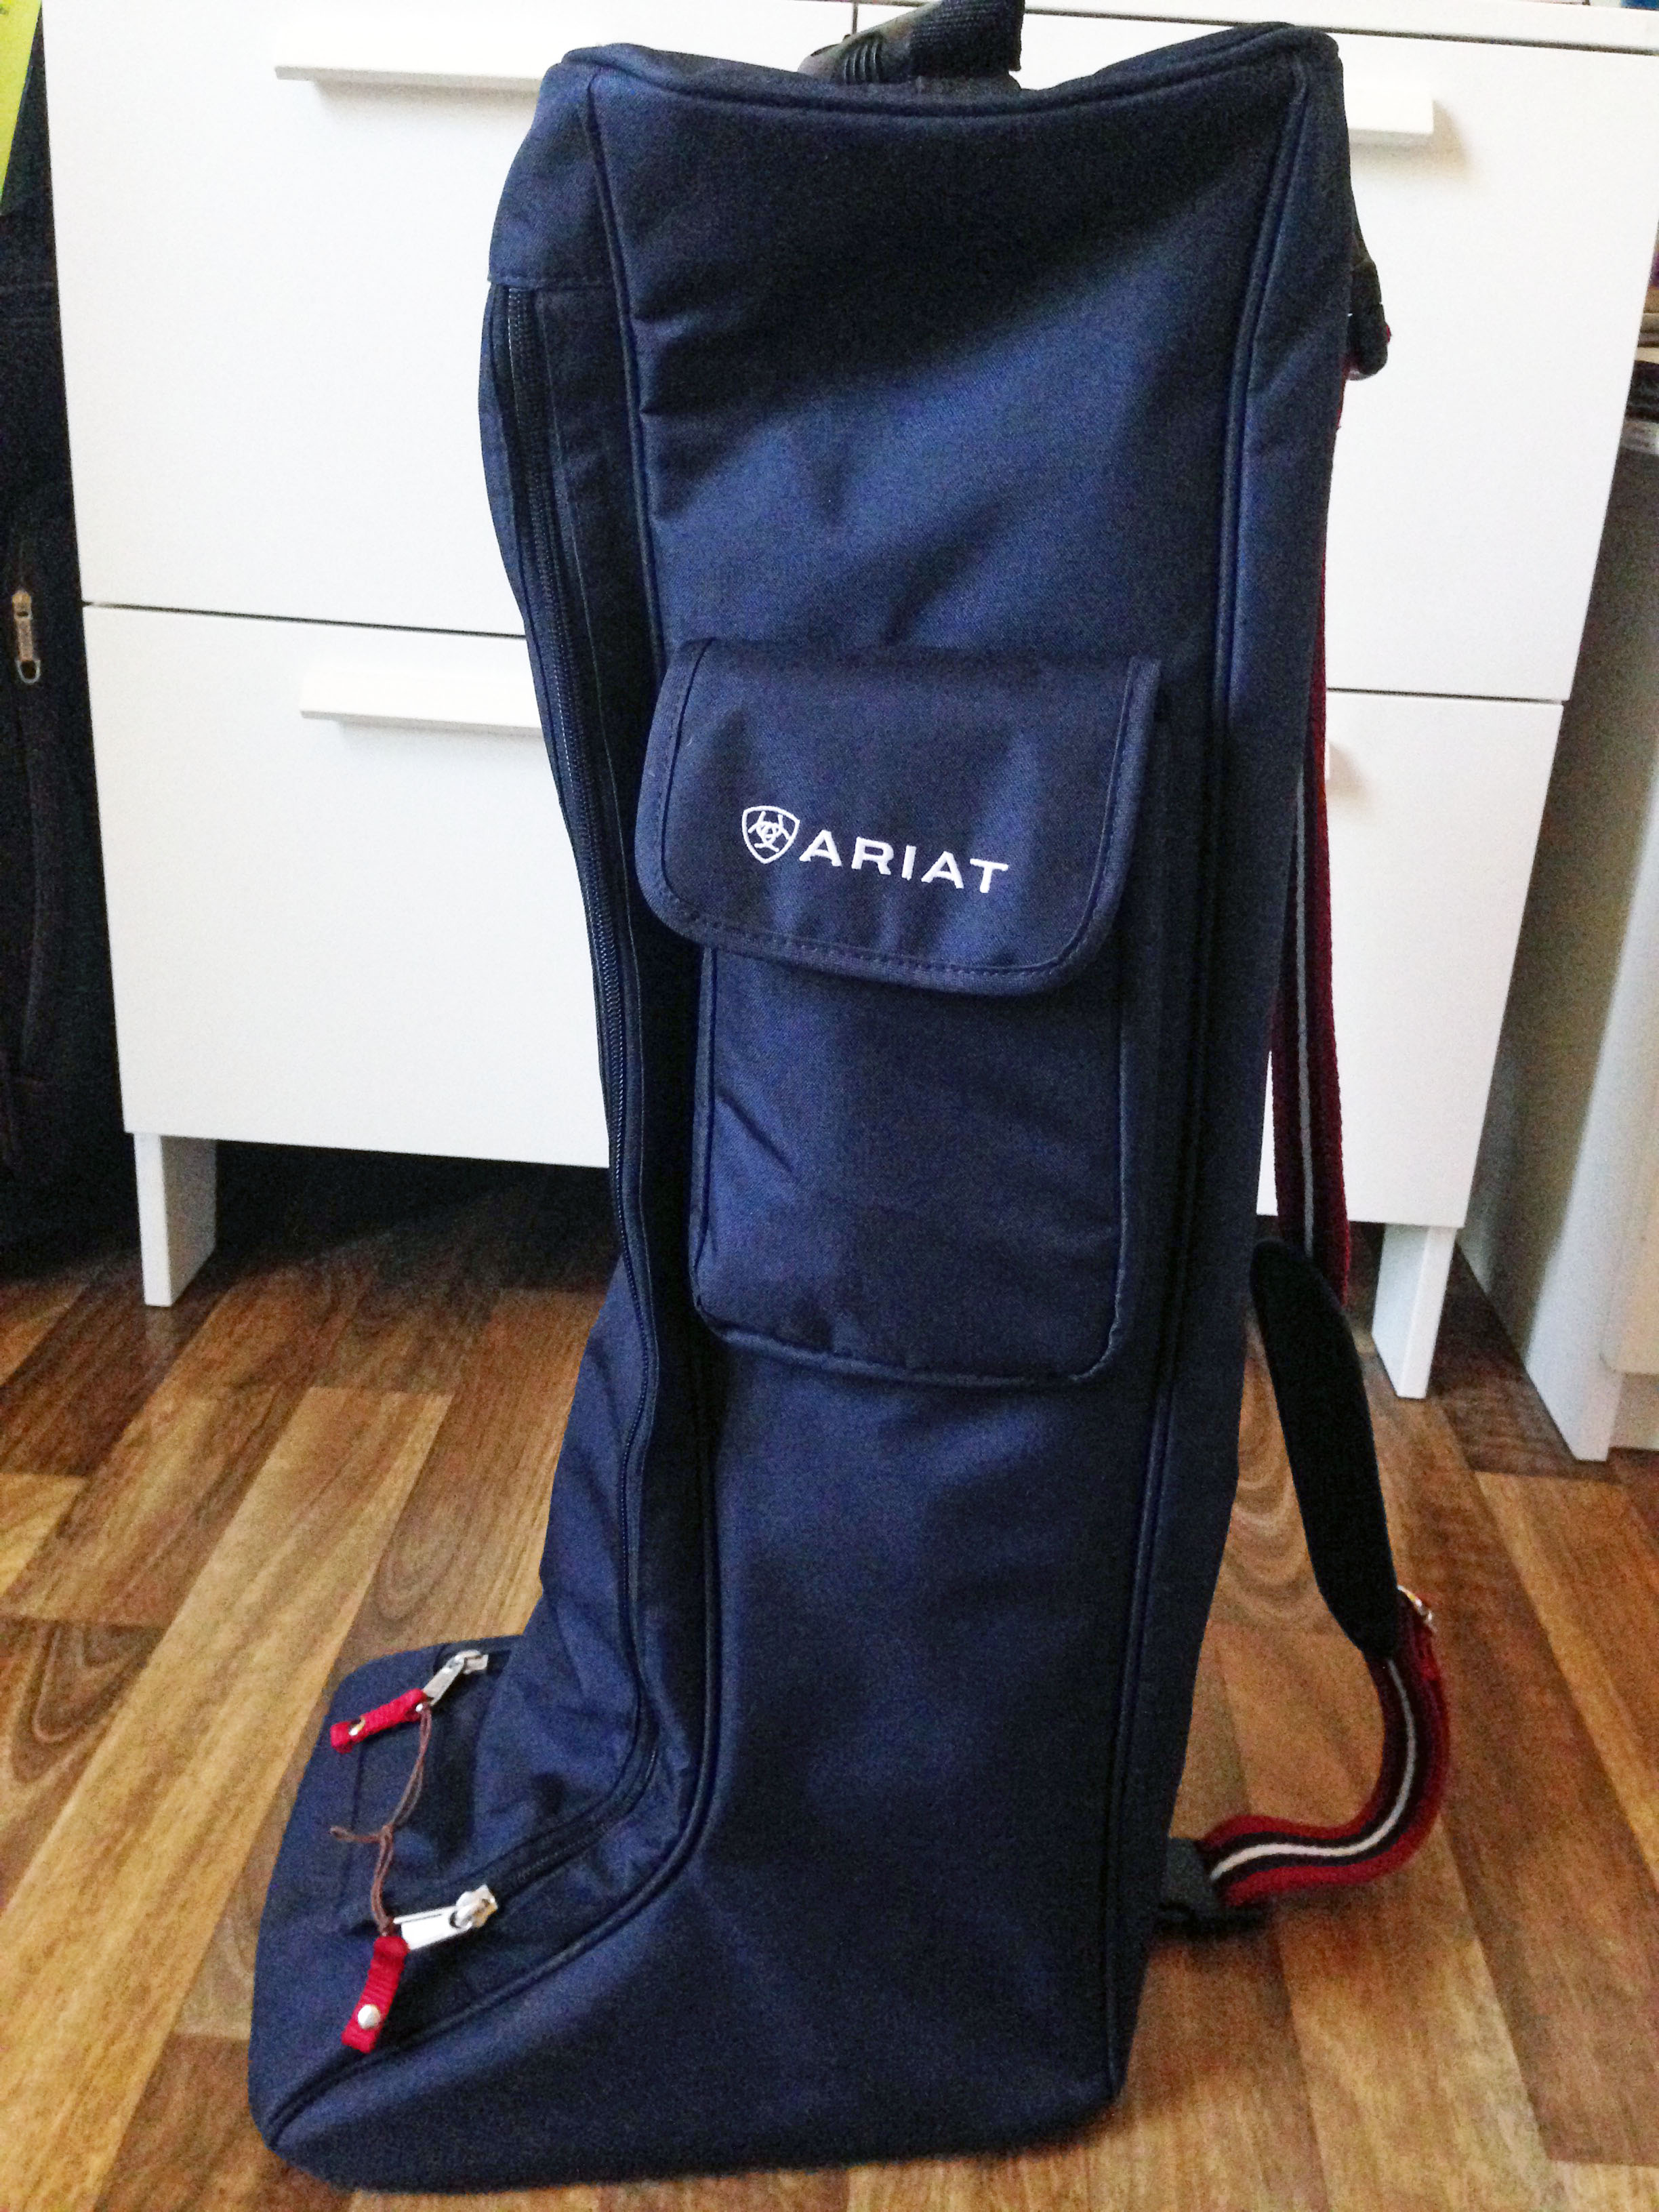 Ariat Tall Boot Bag Review | Tofino Tack